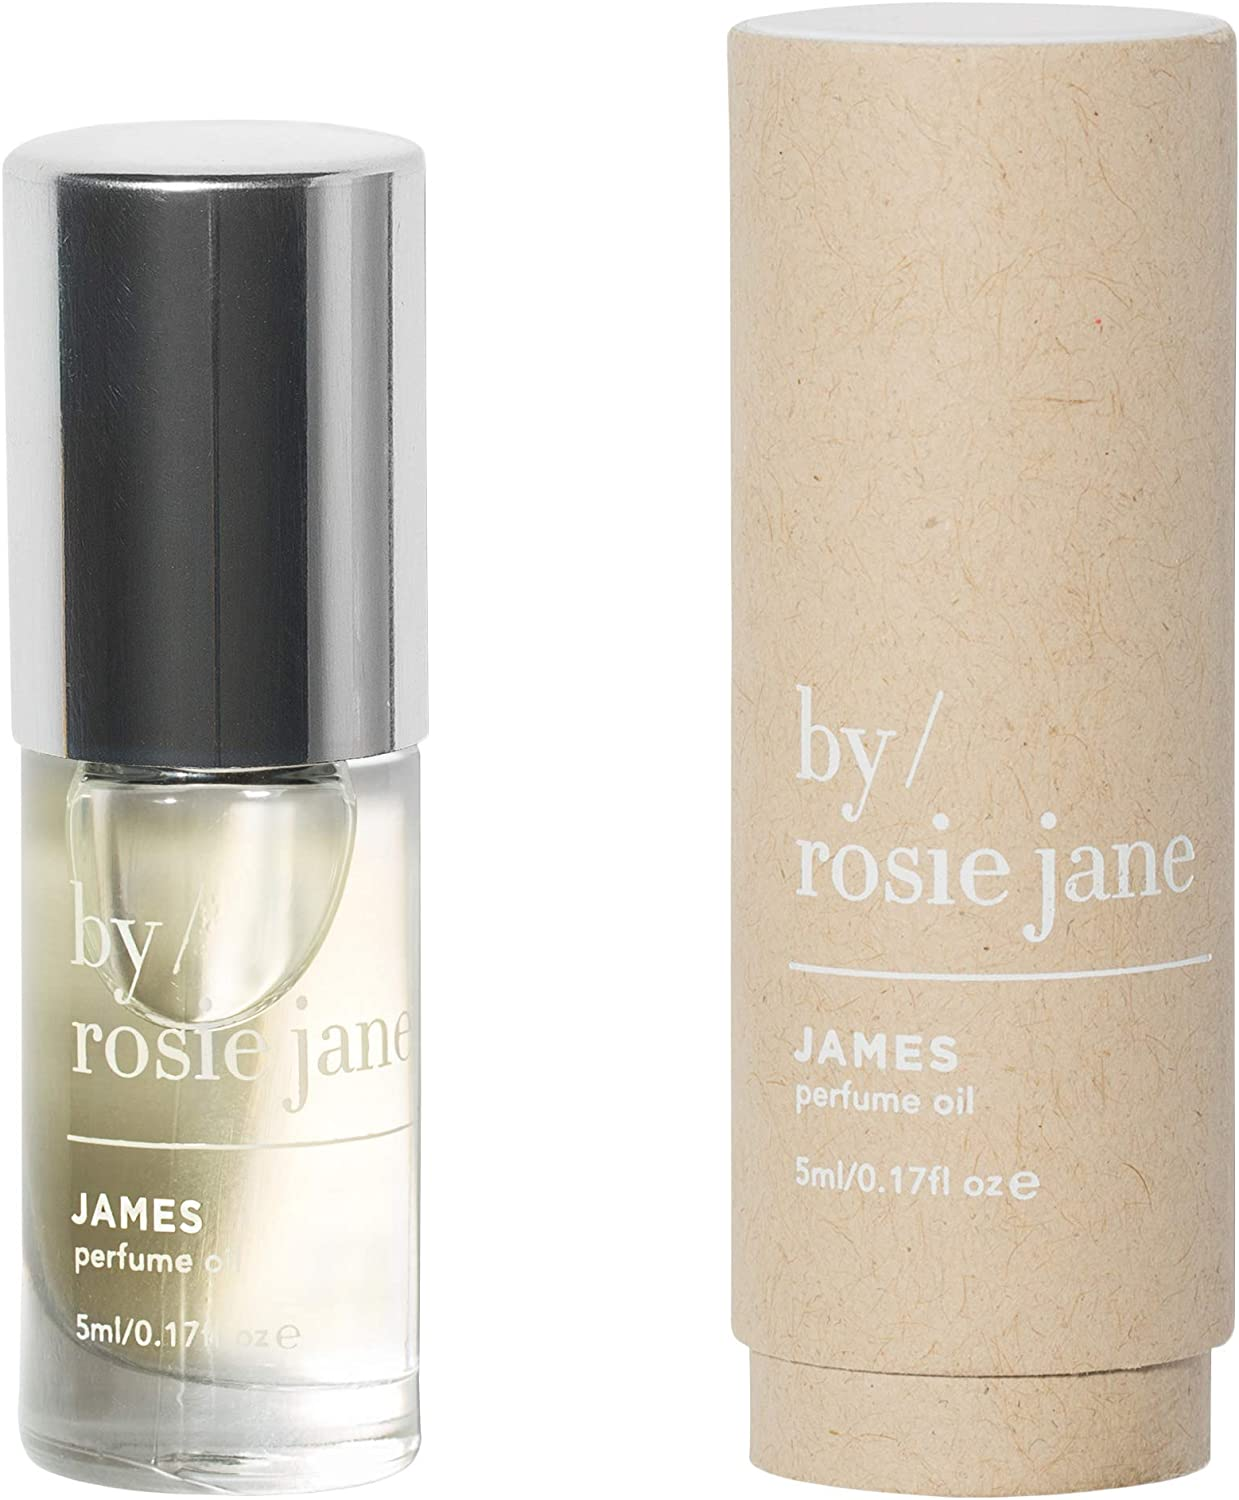 By Rosie Jane James Perfume Oil Roll-On – Fig, Amber, Gardenia Sustainably Sourced Fragrance for Women Men 0.17 Ounces, 5 Milliliters